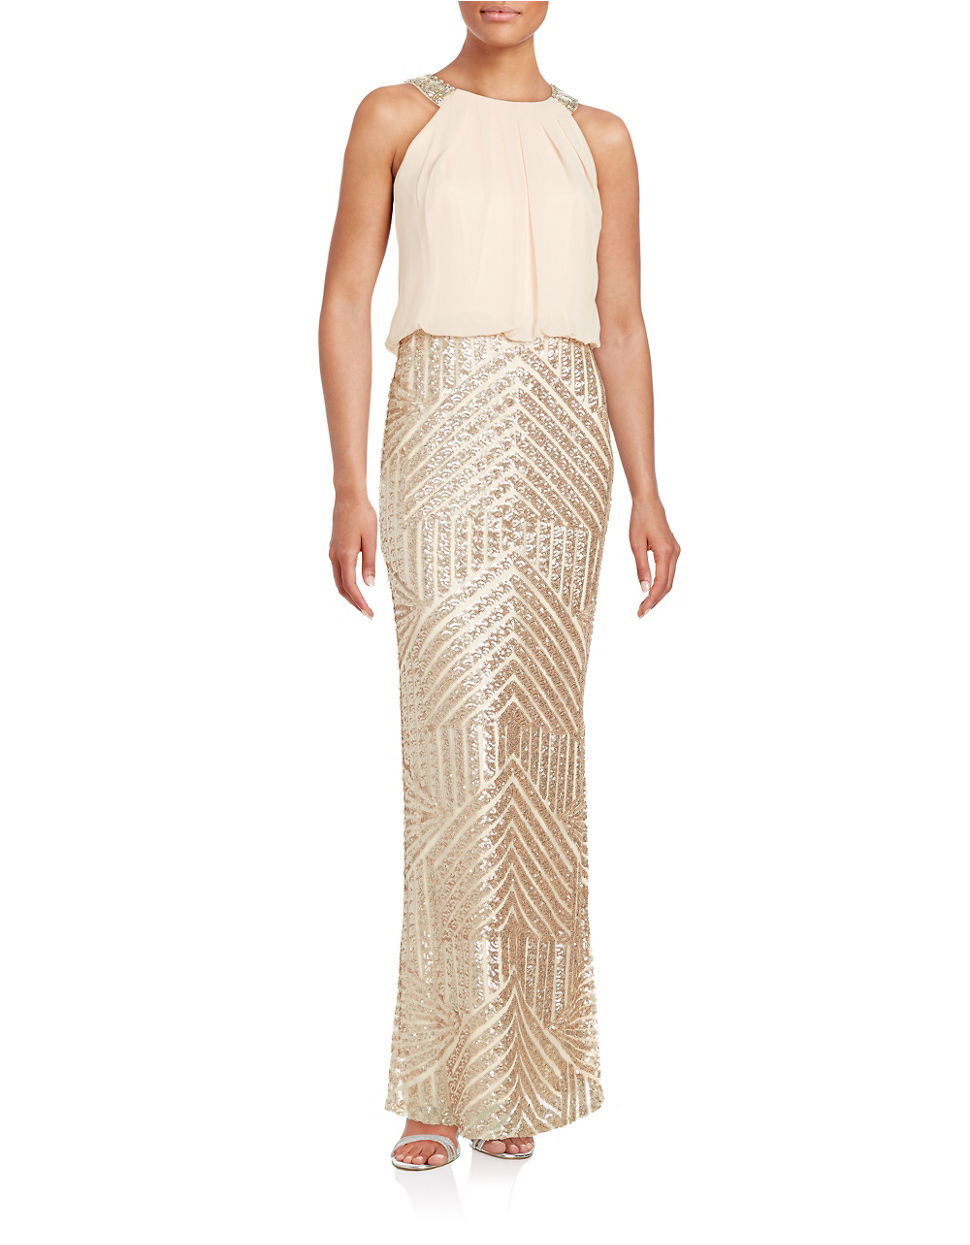 Lyst - Vince Camuto Sequined Blouson Gown